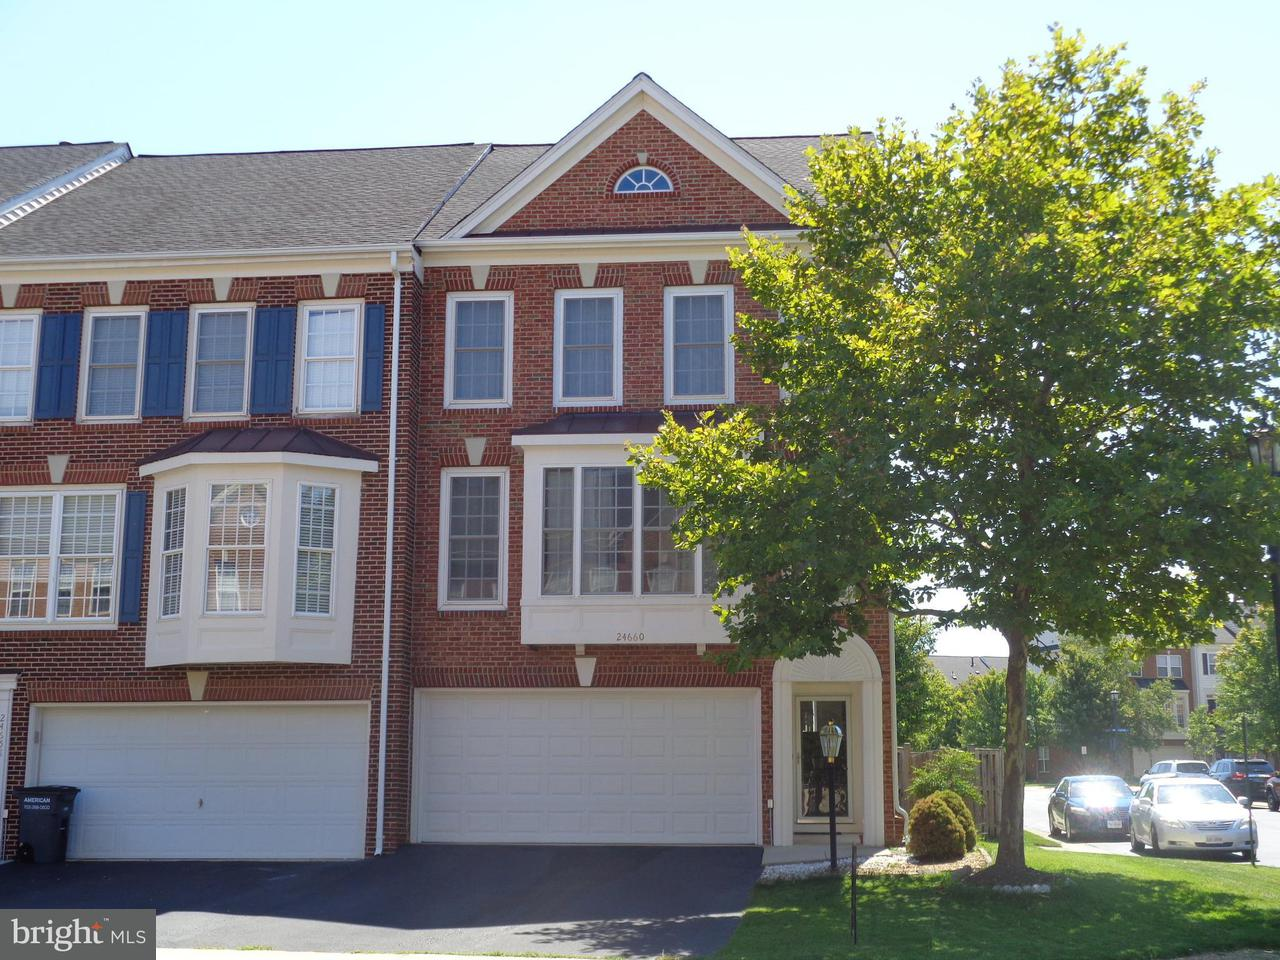 Townhouse for Sale at 24660 NETTLE MILL SQ 24660 NETTLE MILL SQ Aldie, Virginia 20105 United States